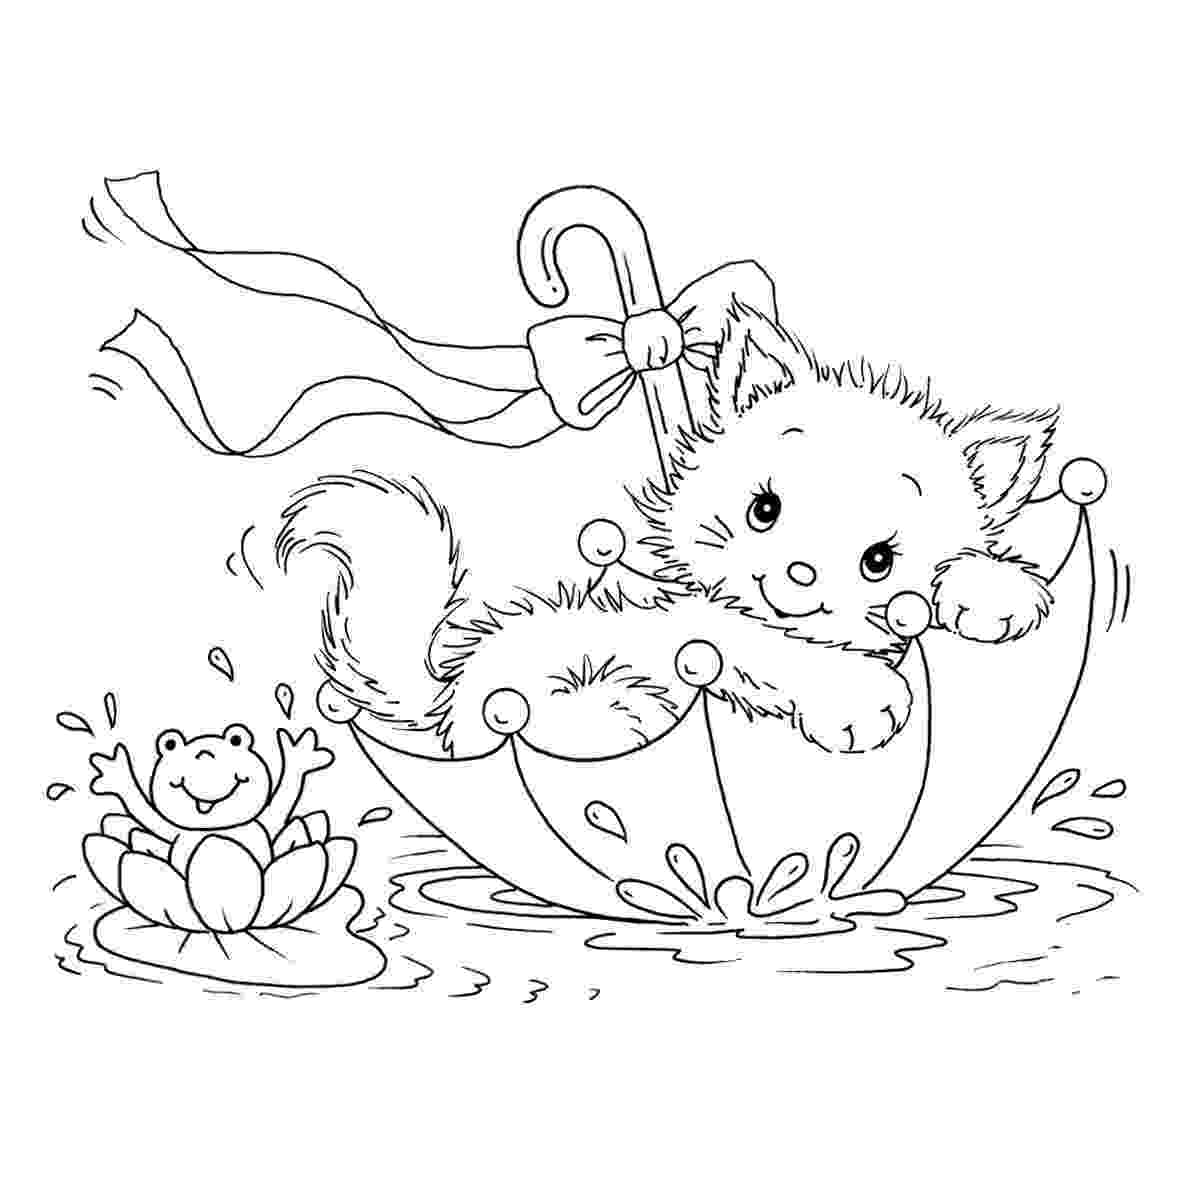 cat coloring pages free printable free printable cat coloring pages for kids free pages printable cat coloring